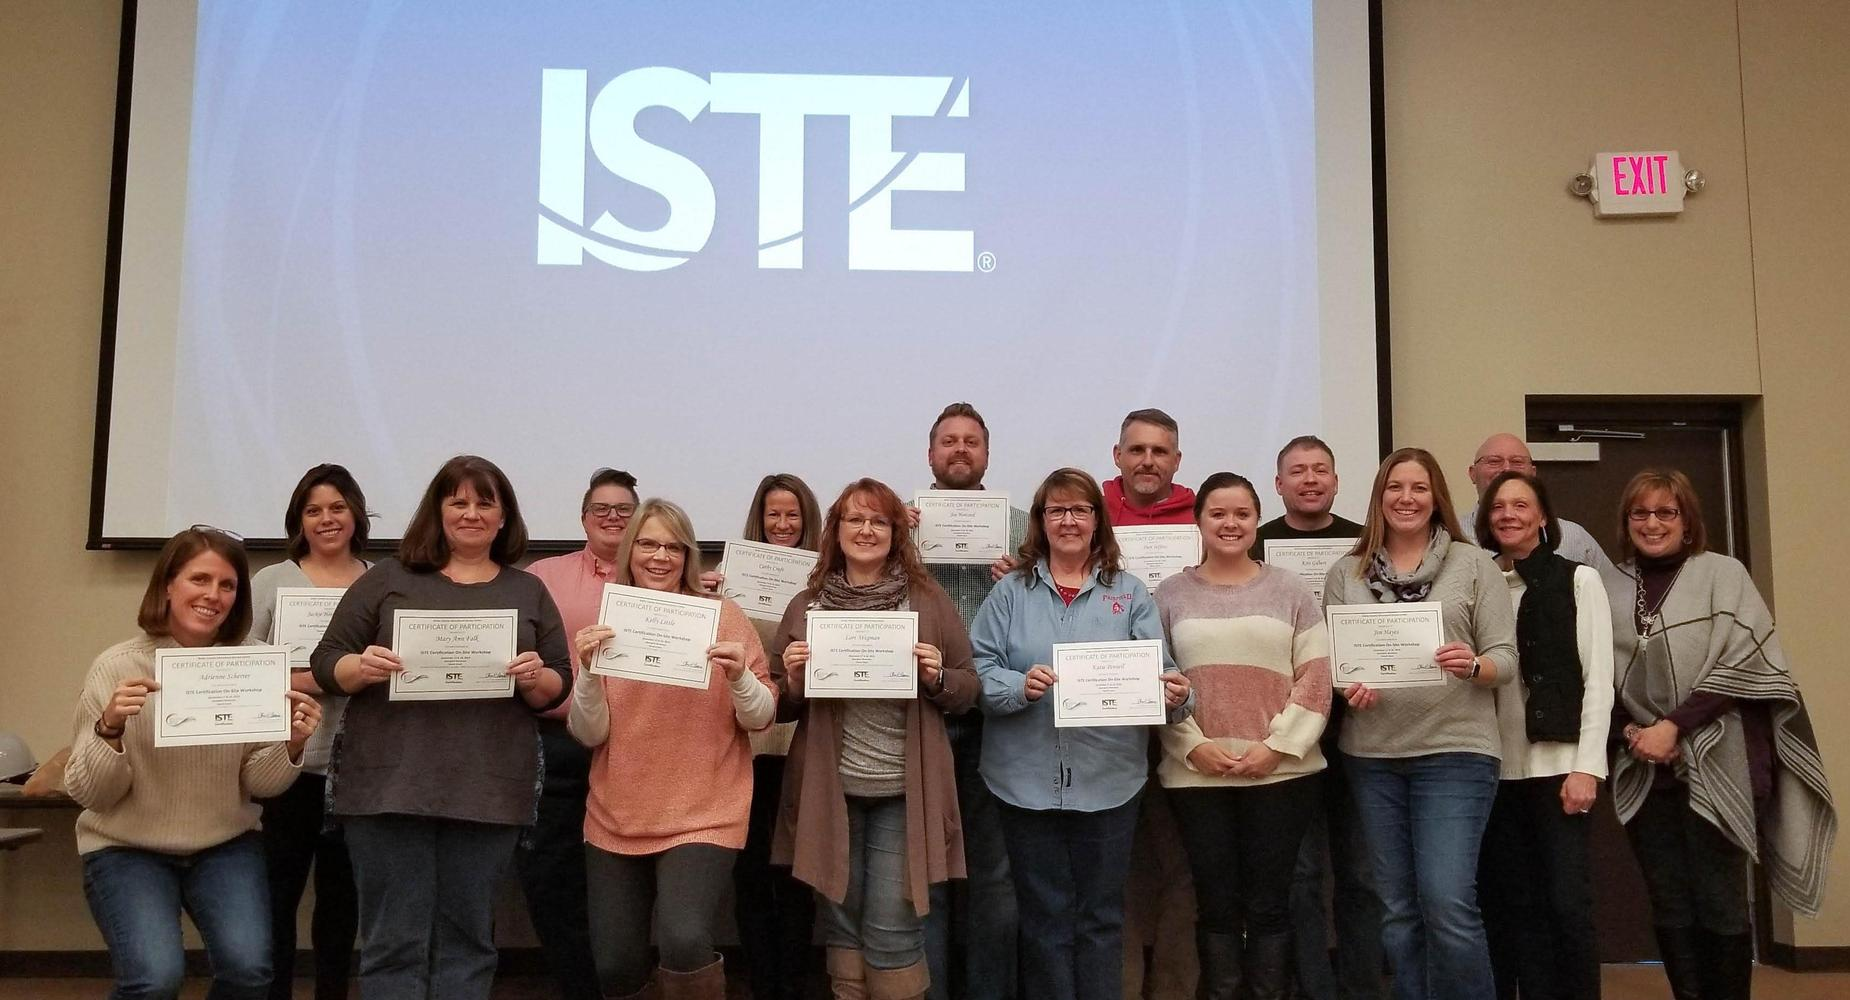 Educators and other learning professionals celebrate completing their ISTE Certification session